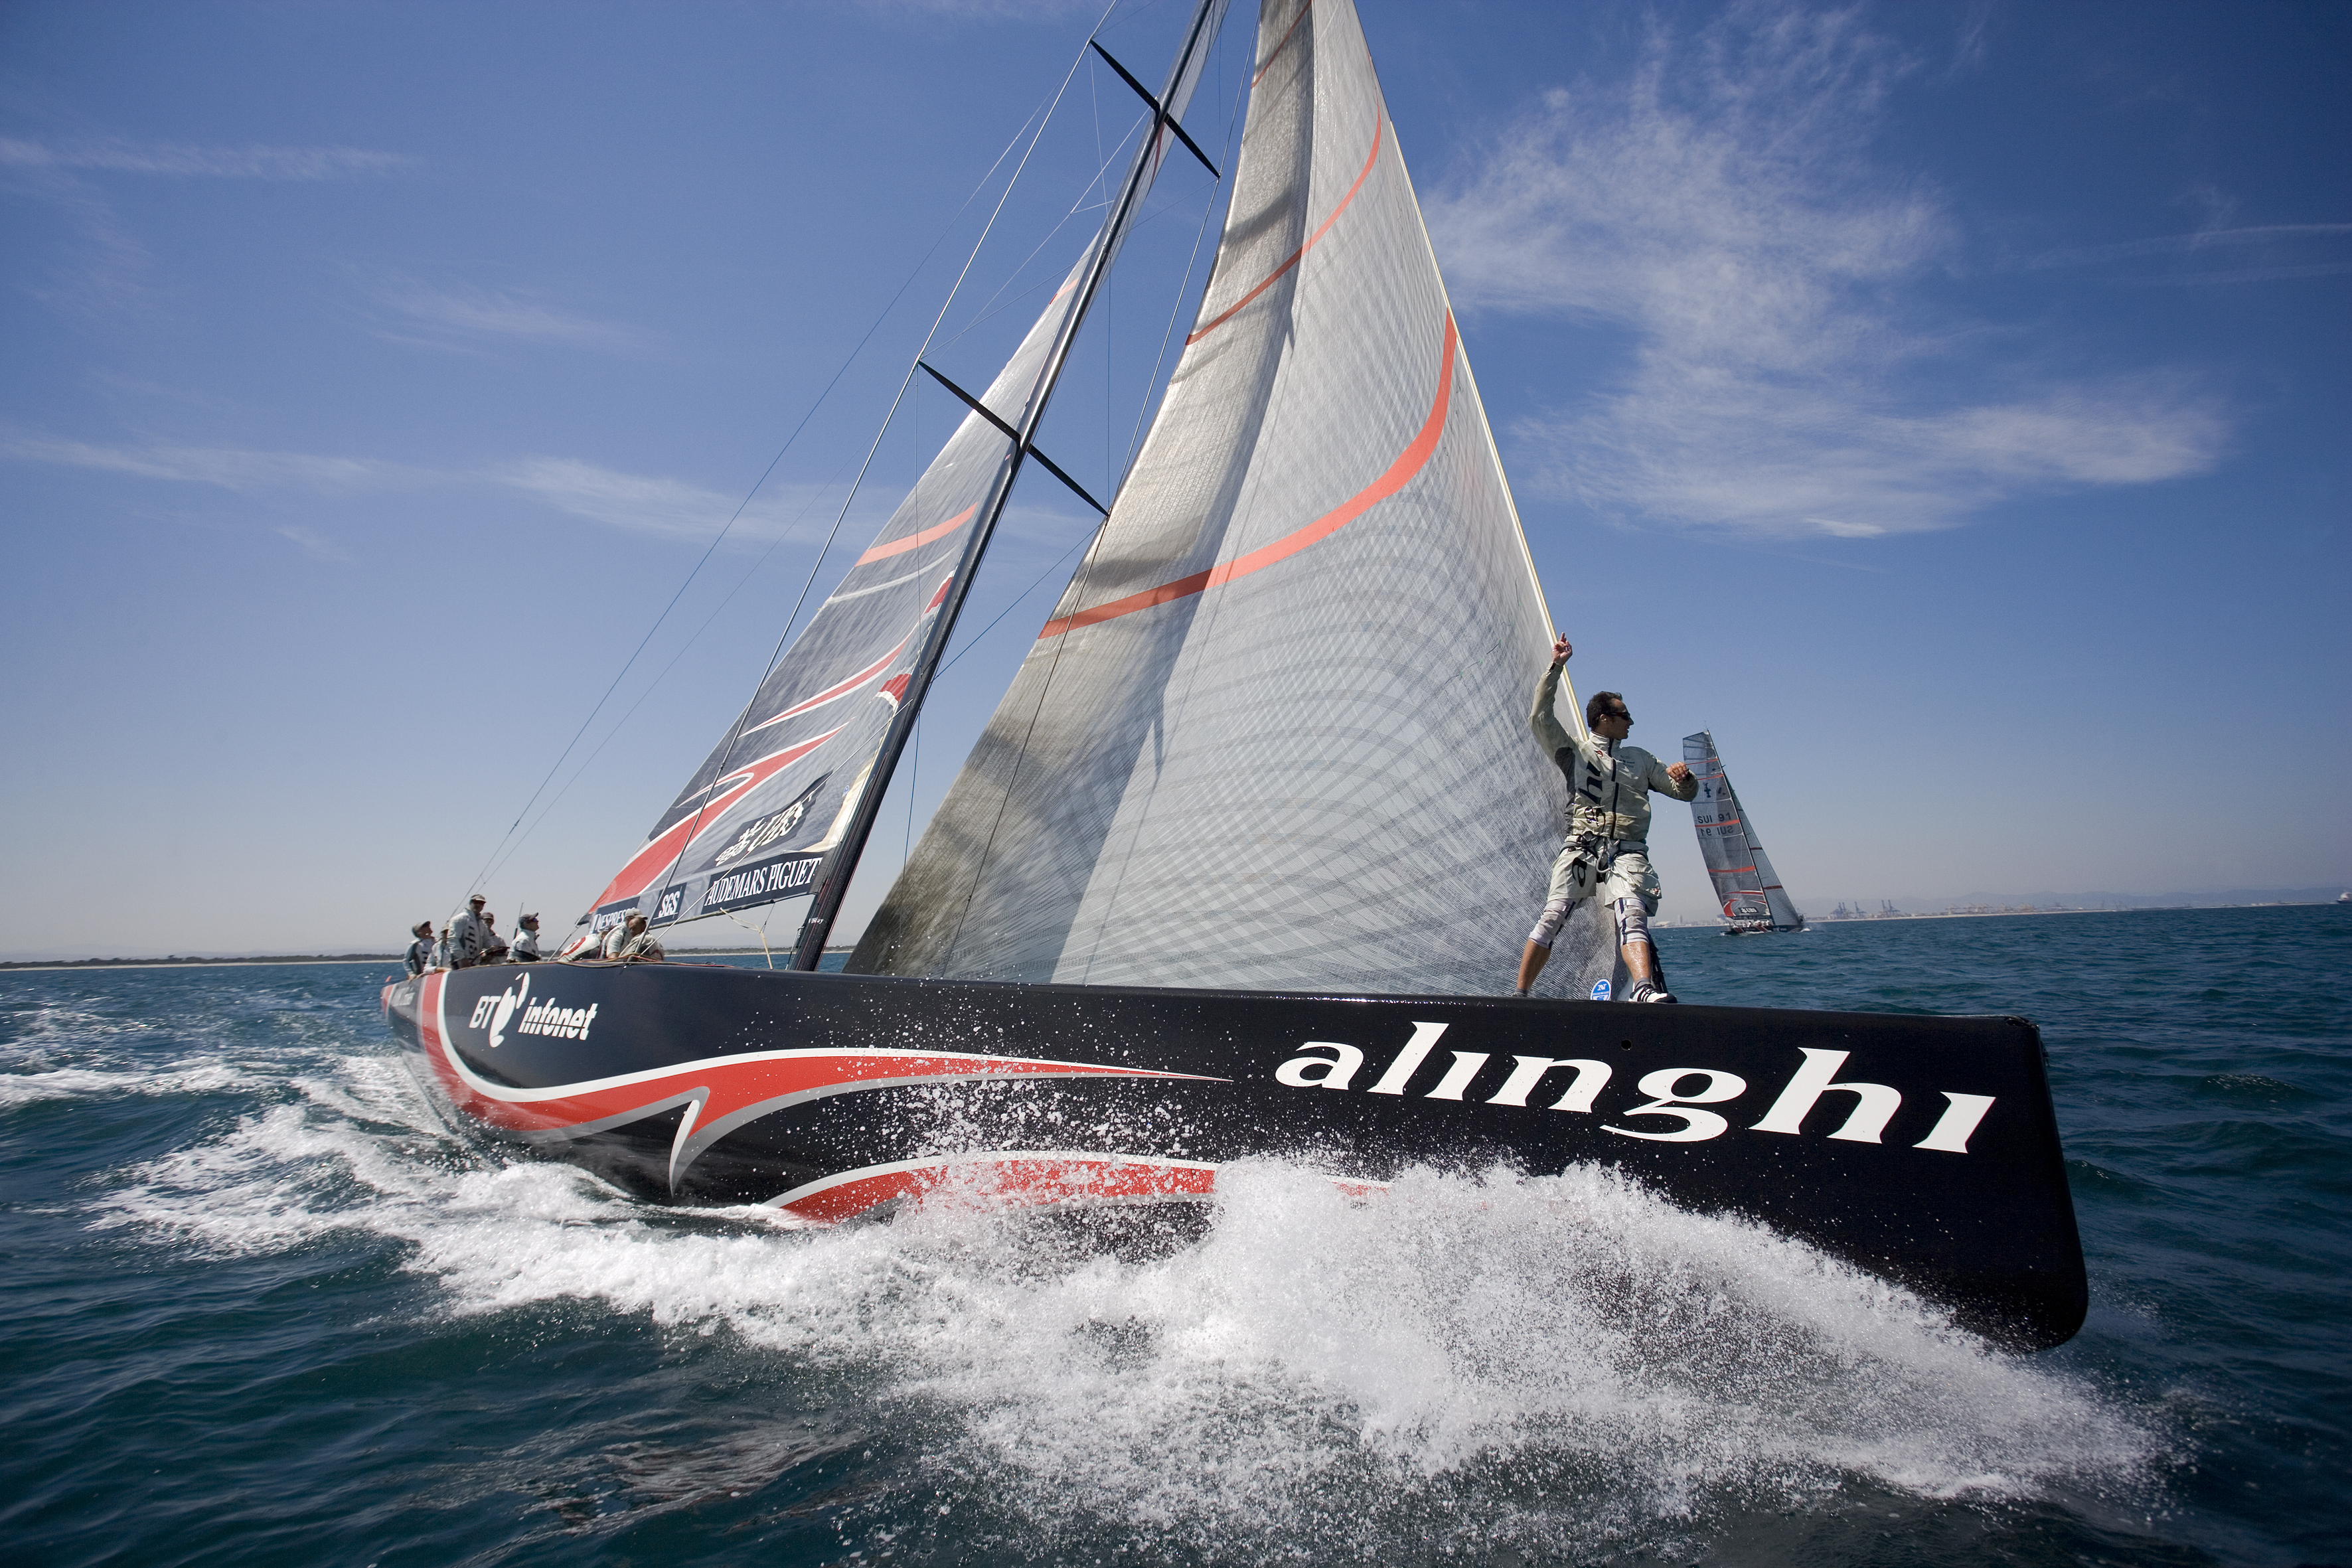 Coppa America, New Zealand trionfa: 7-1 a Oracle. Luna Rossa sfidante ufficiale